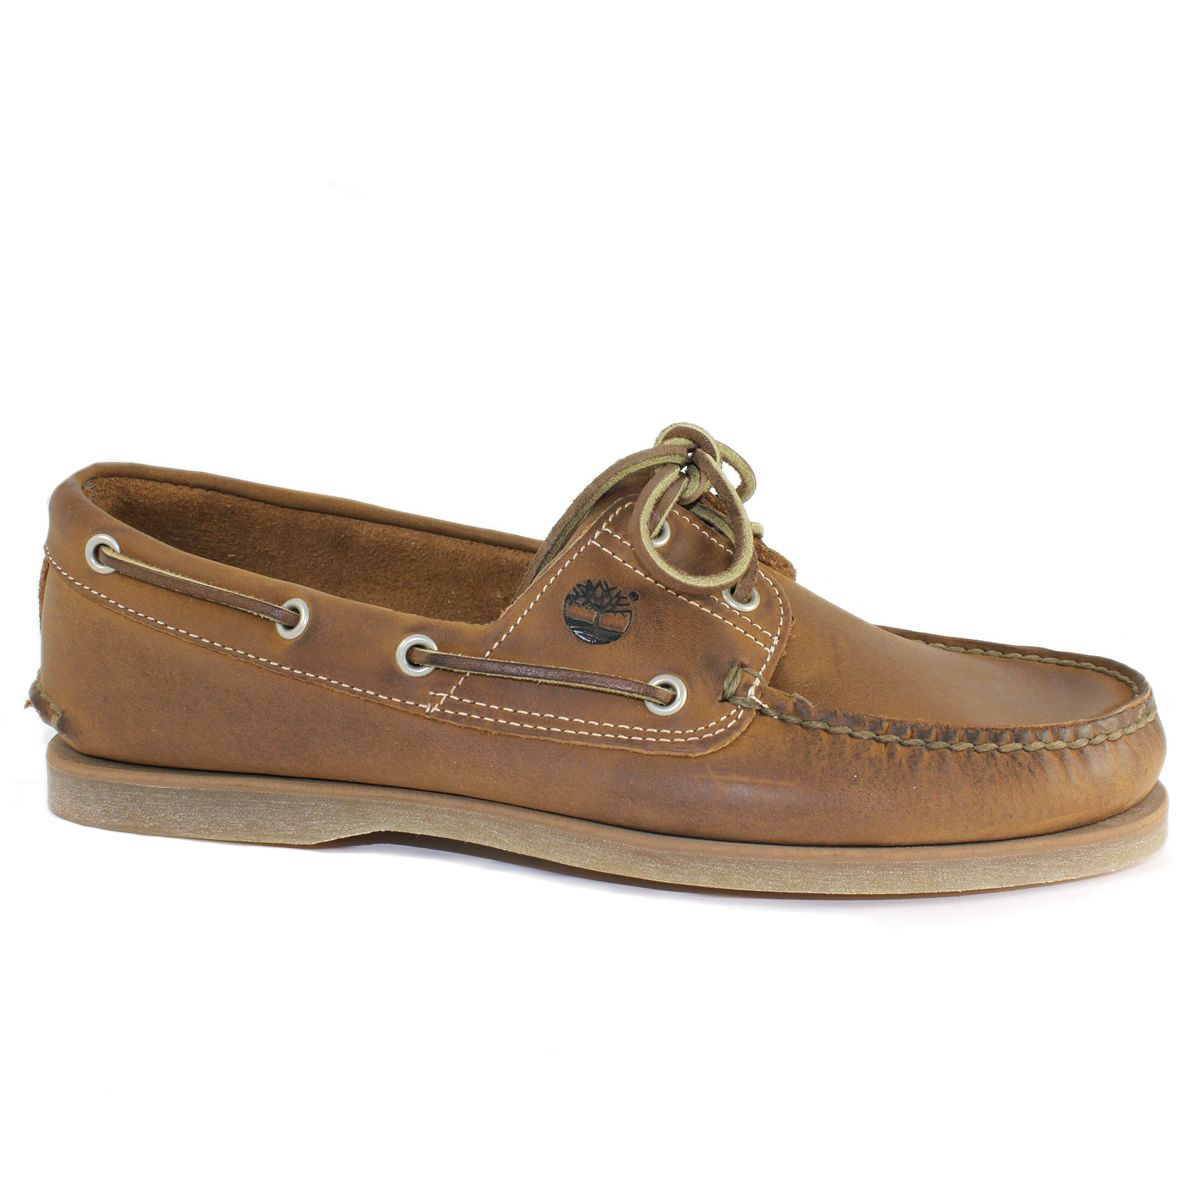 Timberland Classic Boat Shoes | CLOTHES | Pinterest | Classic boat ...